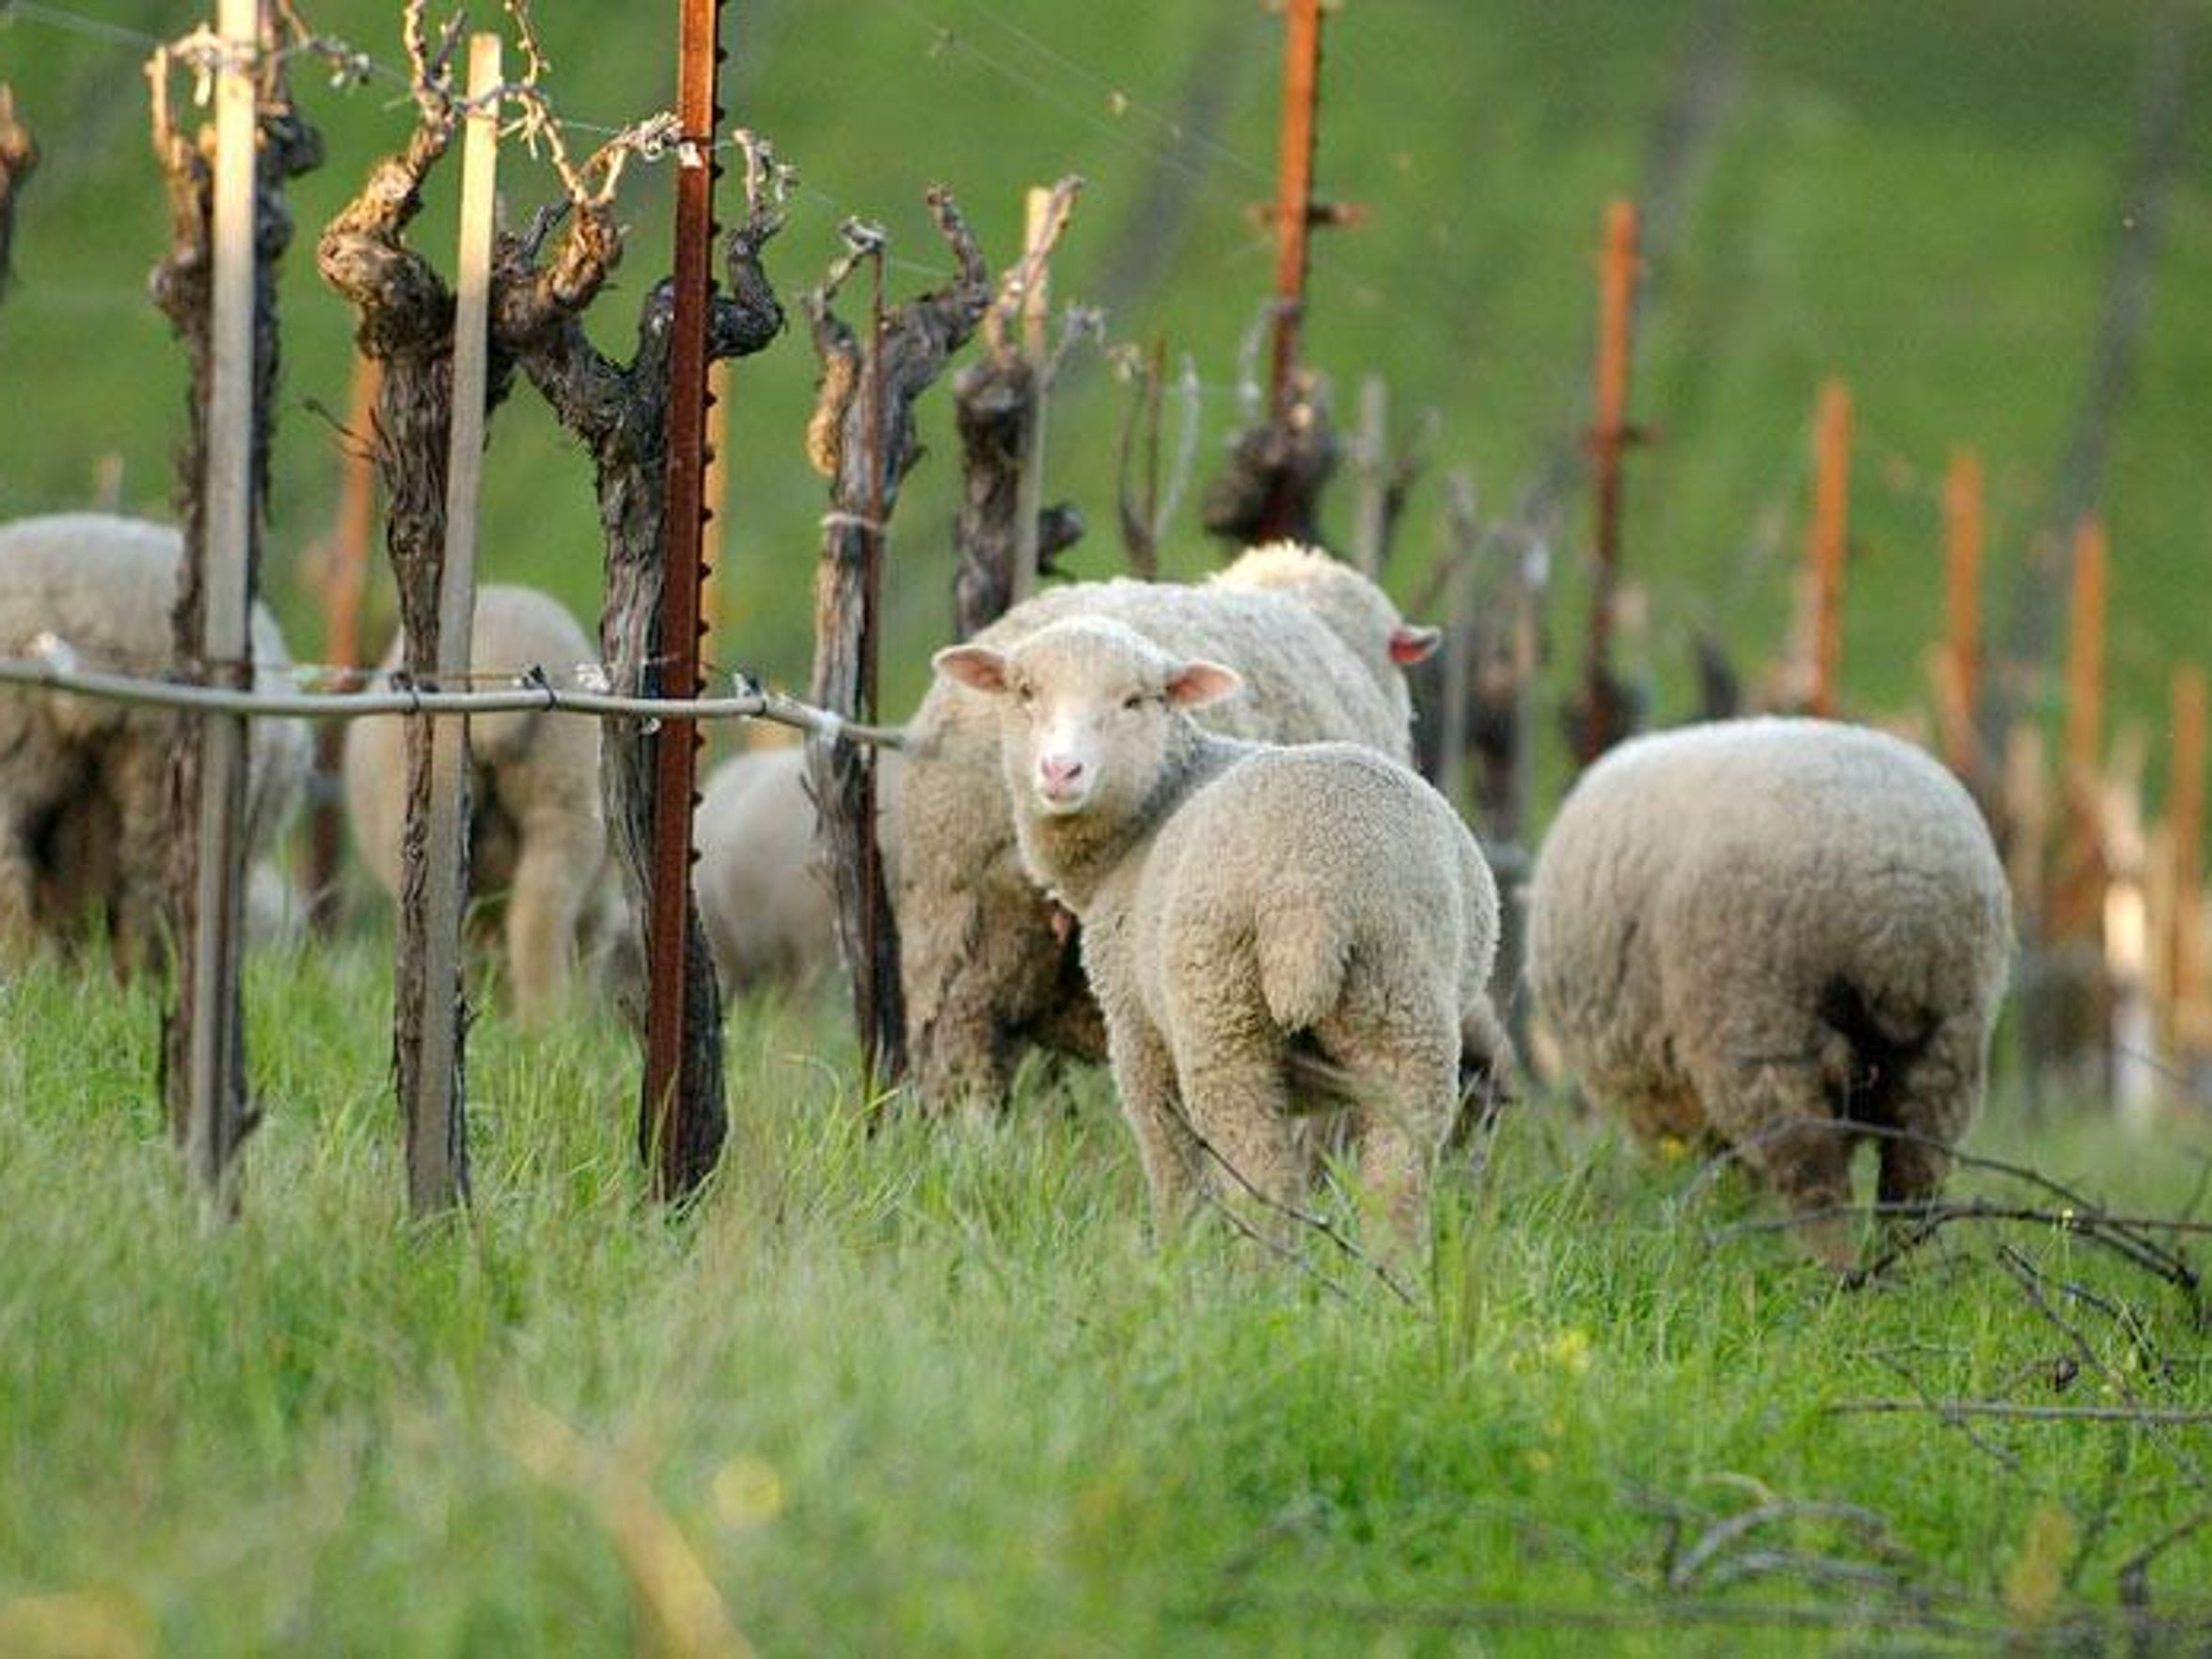 Winter wine 2012 lambs at Robert Sinskey